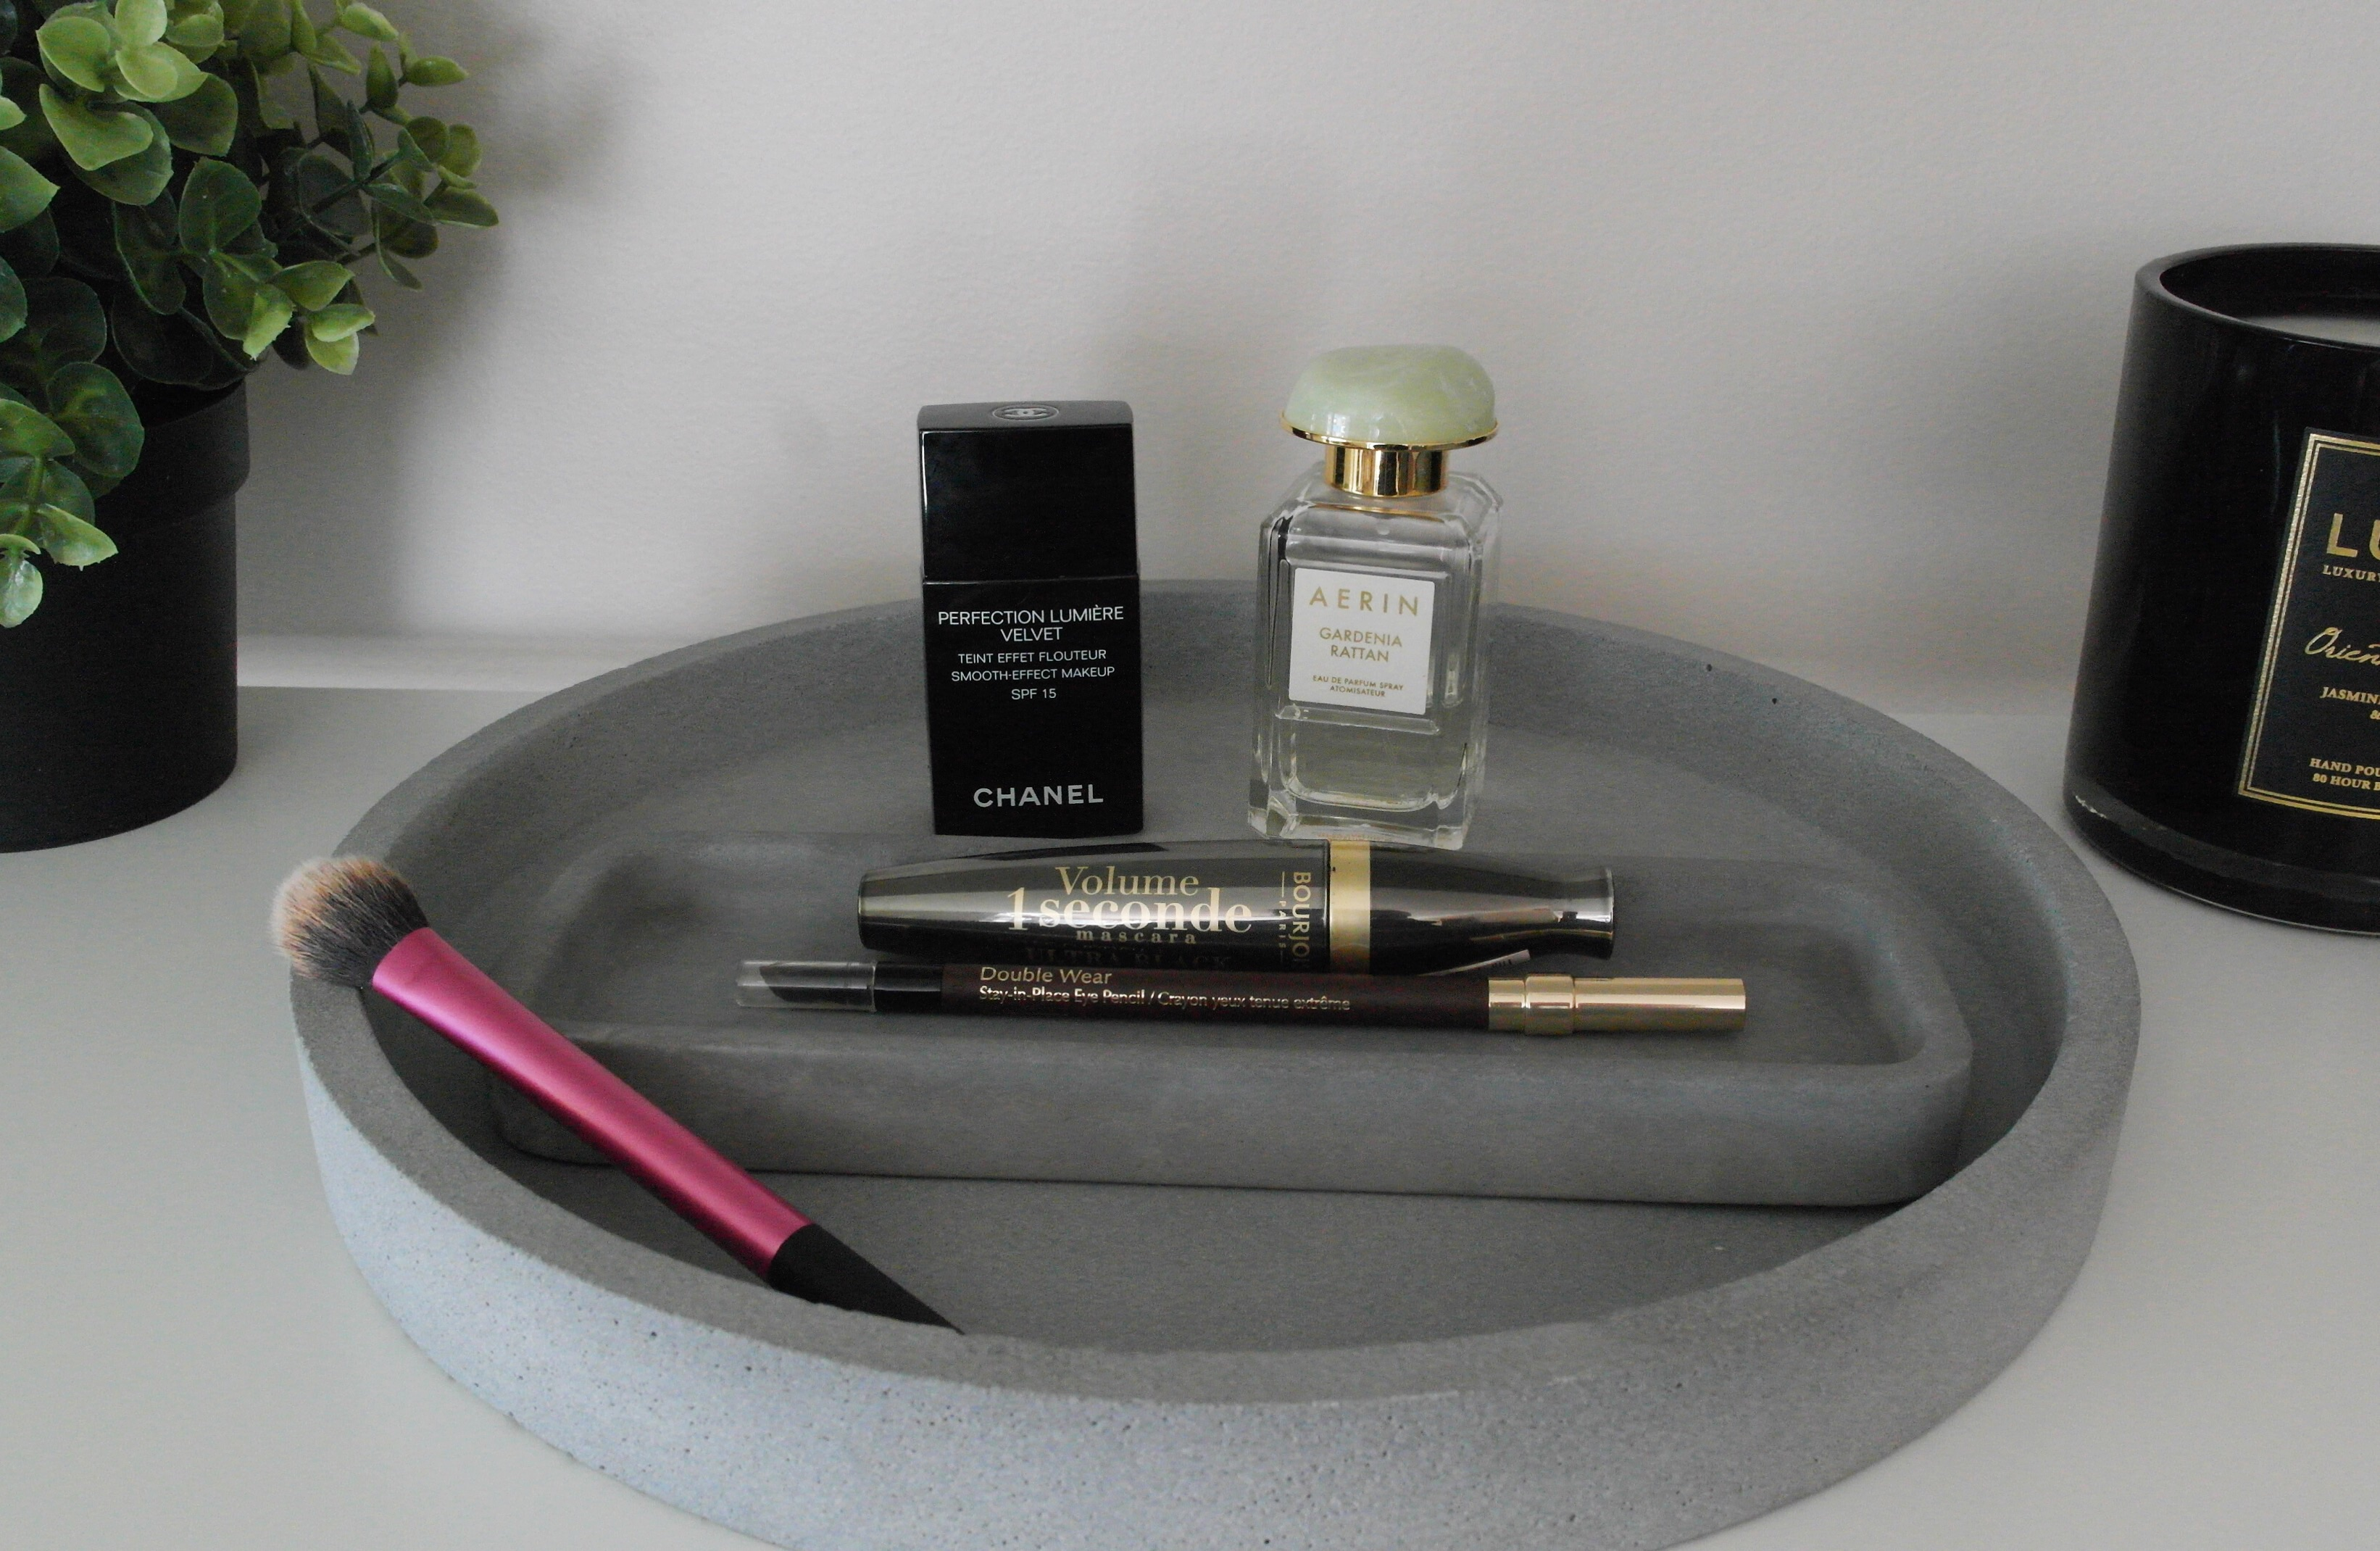 Chanel Perfection Lumiere Velvet, Aerin Gardenia Rattan, Bourjois 1 Second Volume Mascara, Estée Lauder Double Wear Eyeliner, Real Techniques Setting Brush